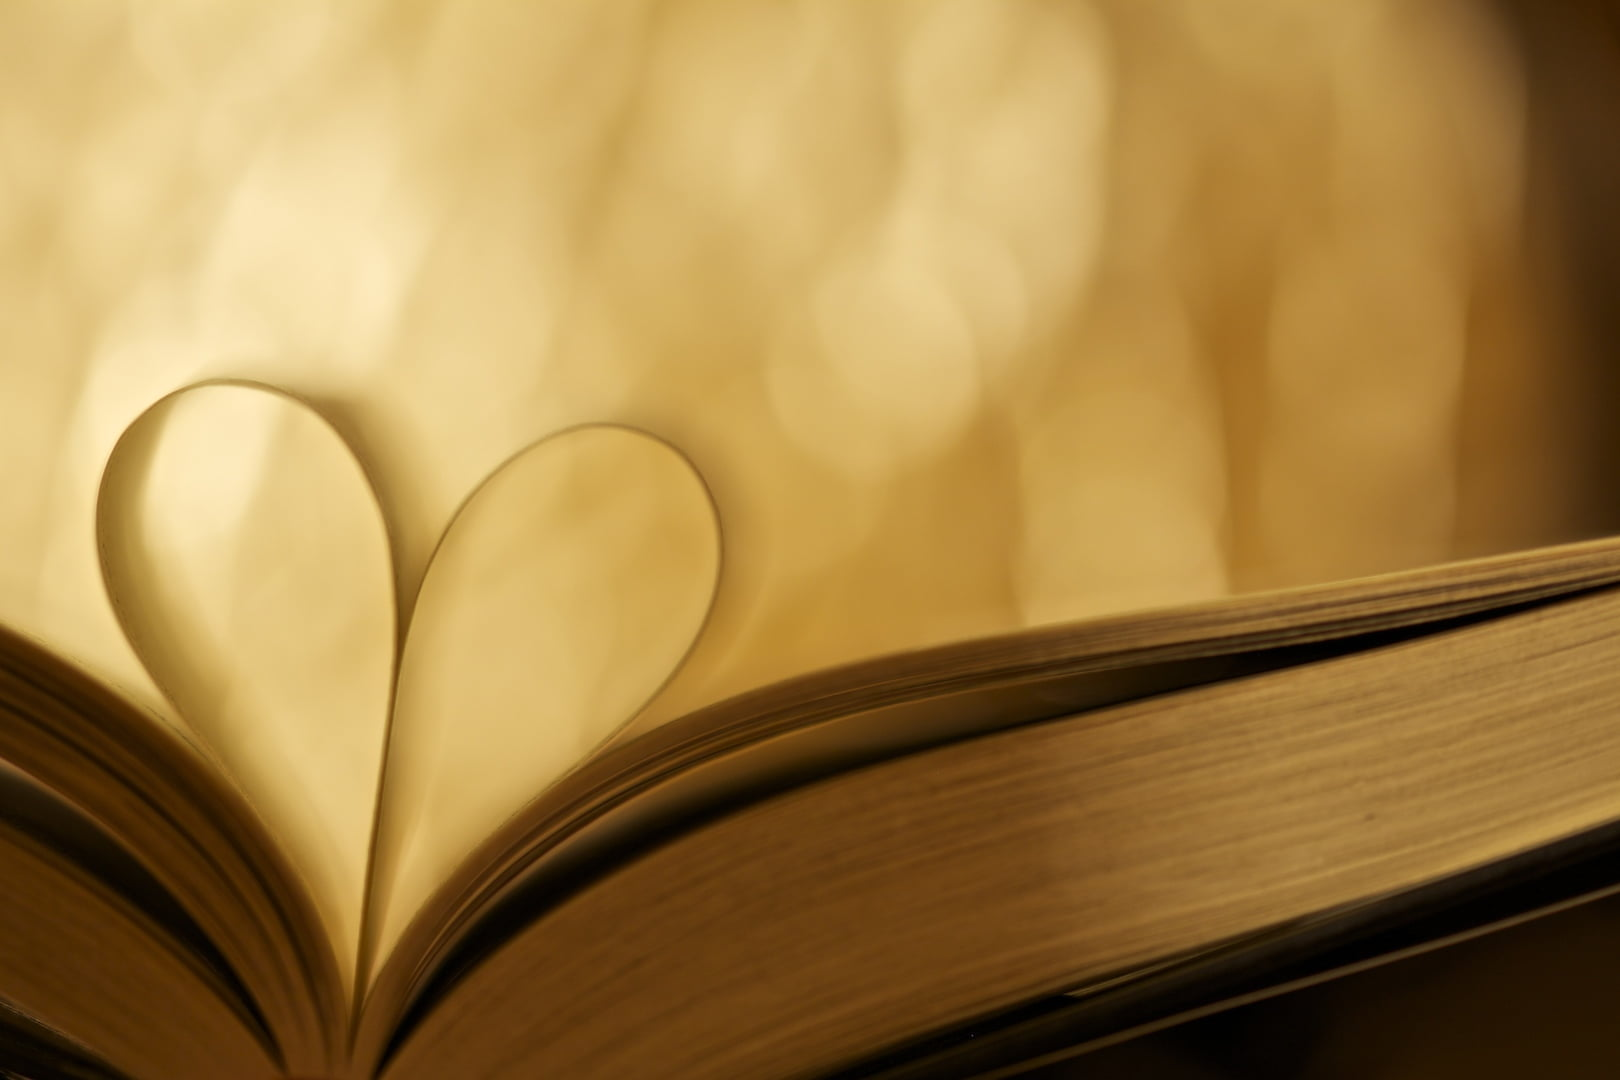 Photo of heart shaped book page HD wallpaper Wallpaper Flare 1620x1080